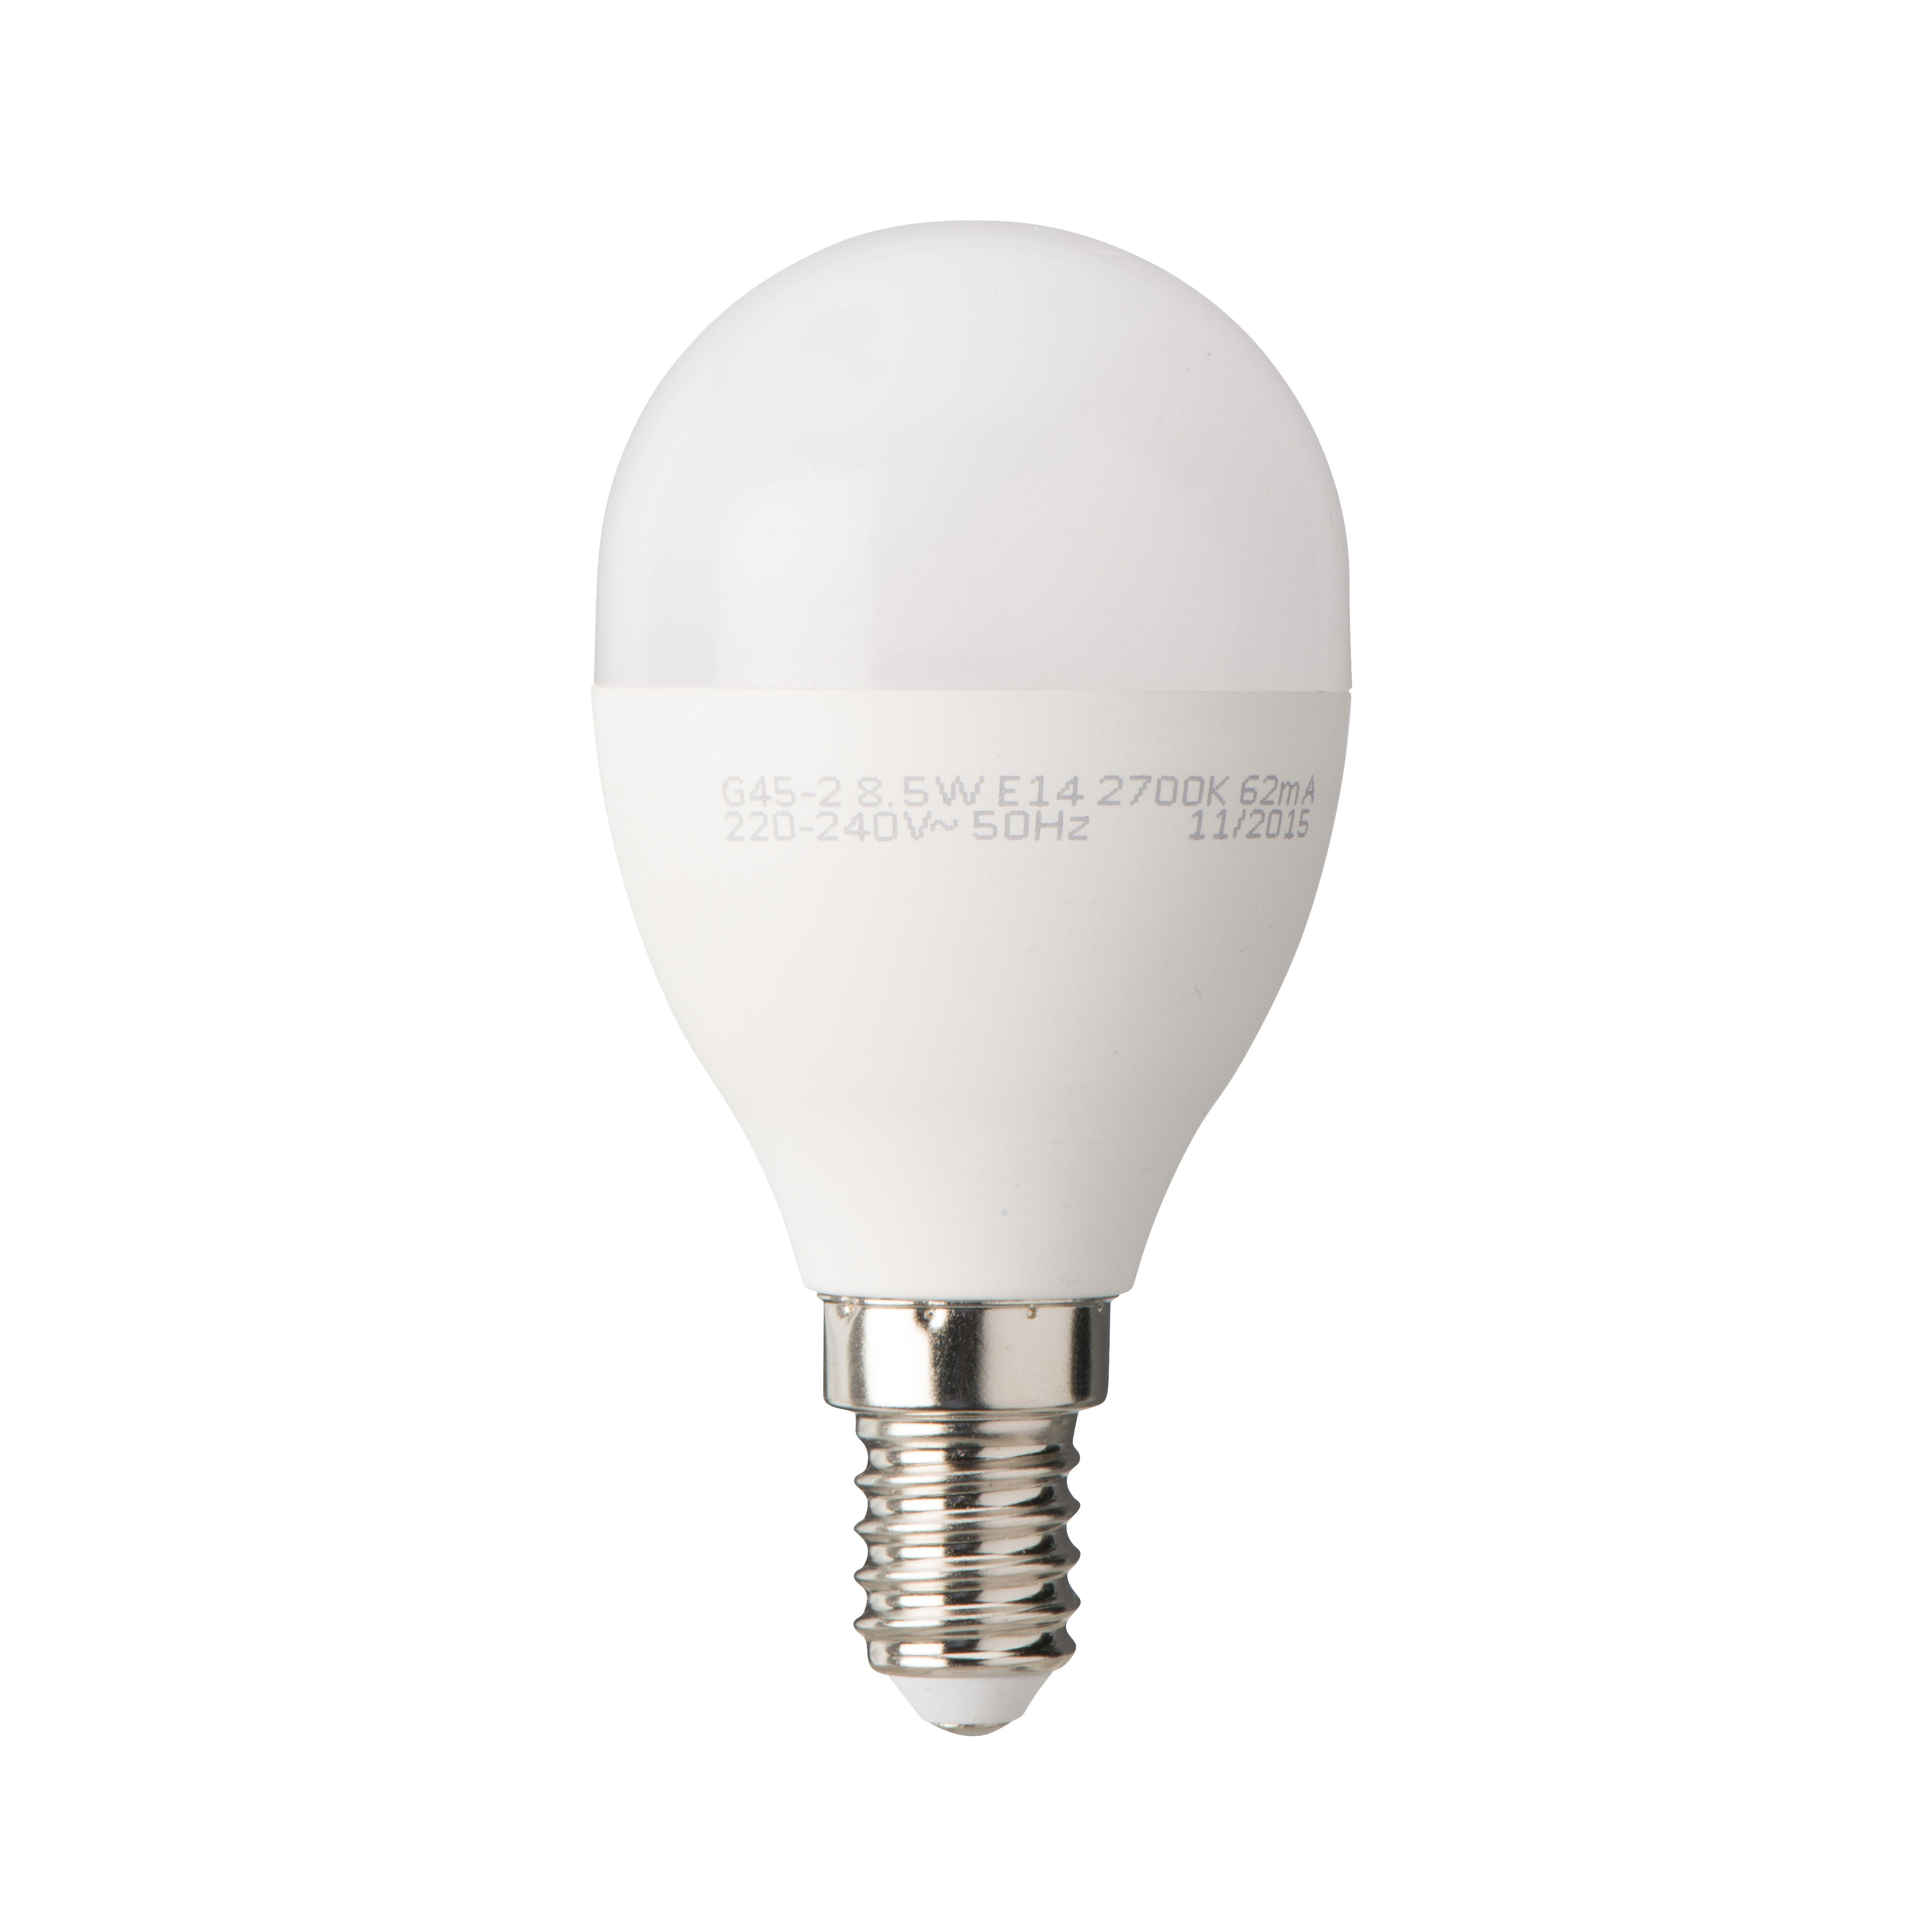 Ampoule Led G9 Ikea. Ledare Ampoule Led E Ikea With Ampoule Led G9 Ikea. Elegant Best White Watt ...